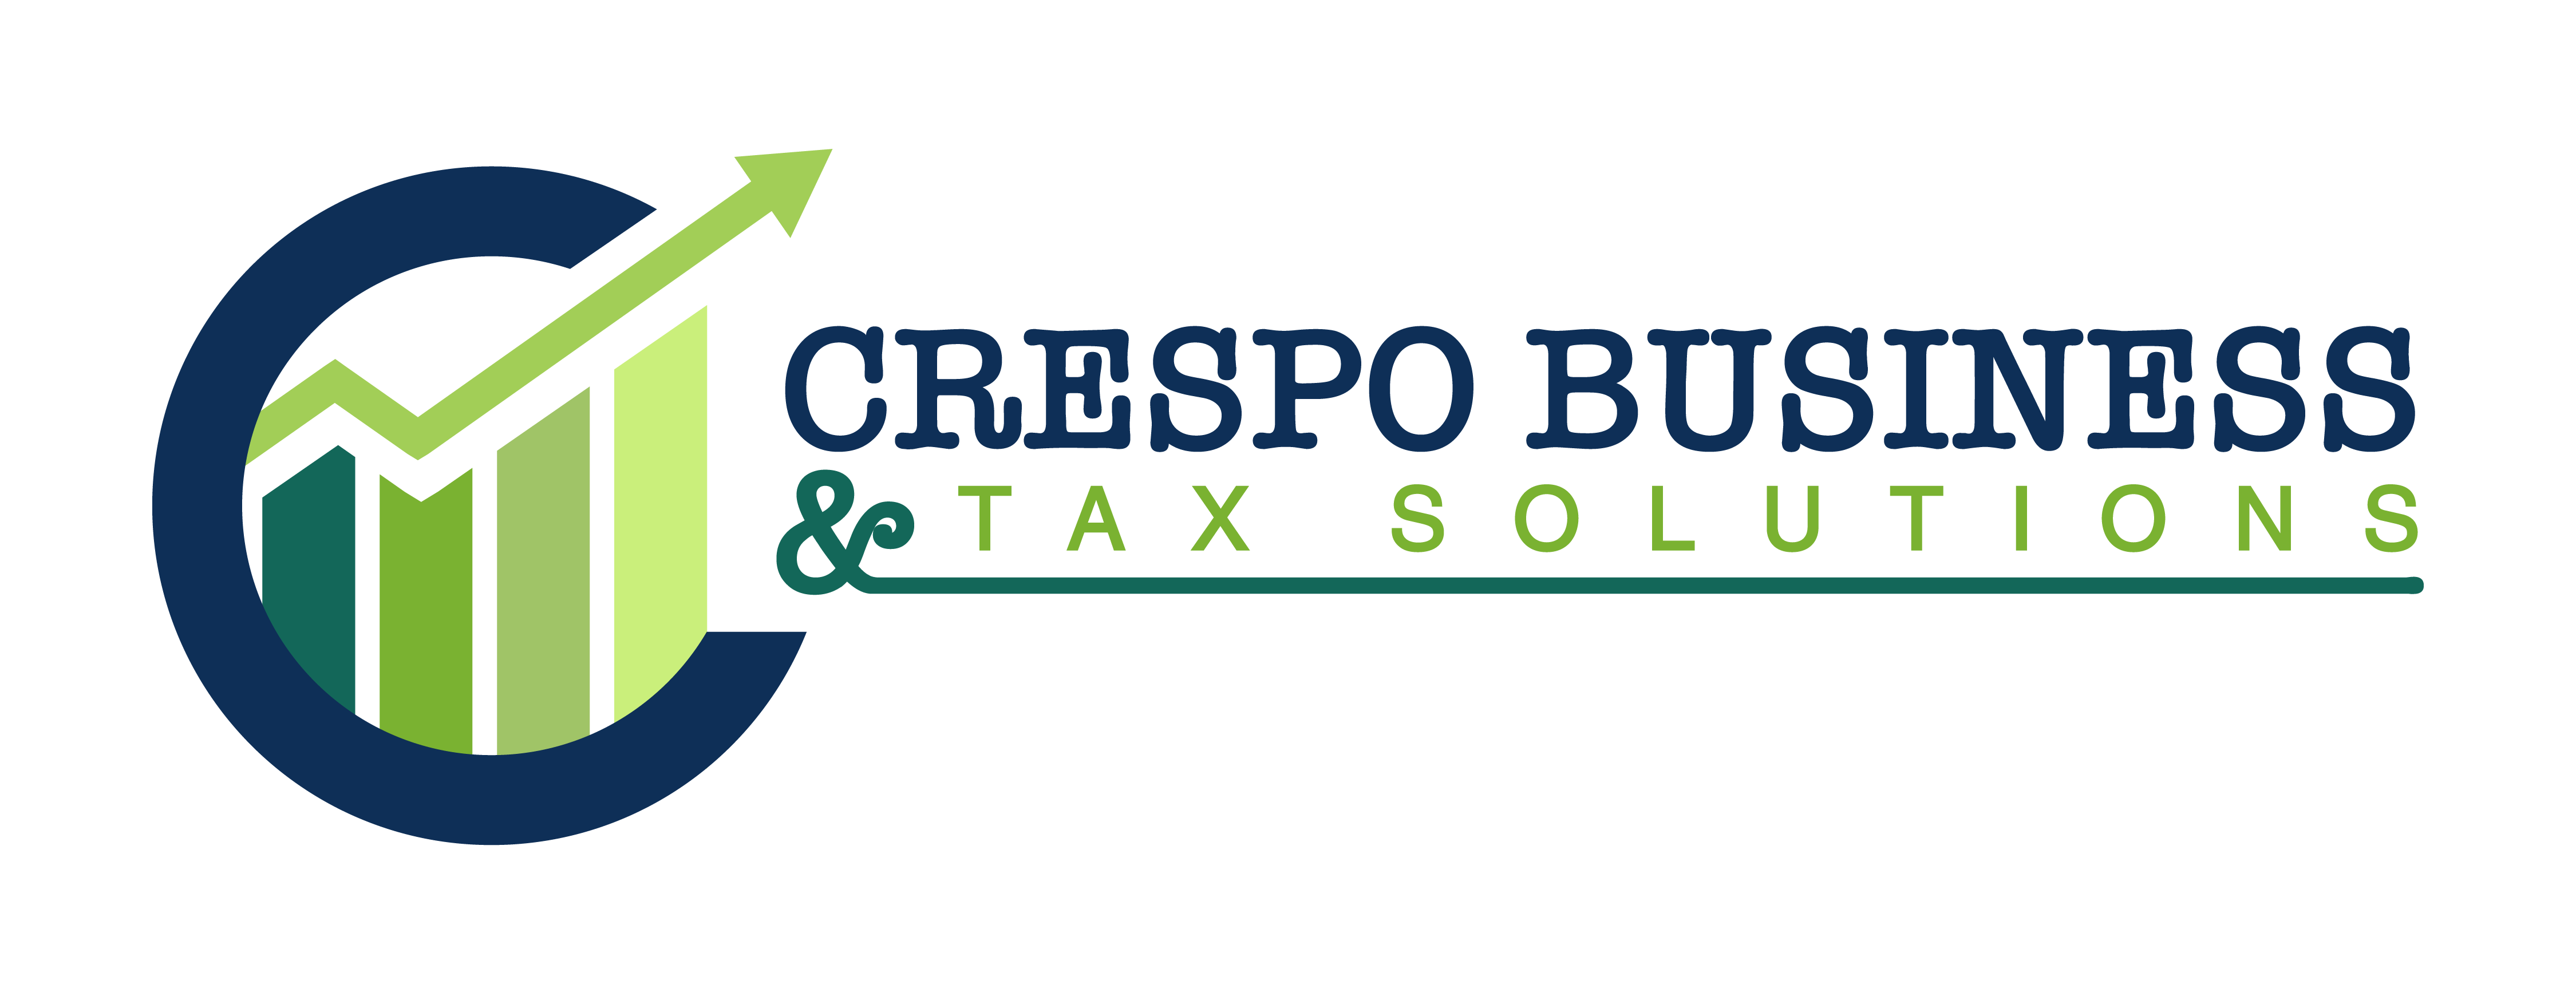 CRESPO BUSINESS & TAX SOLUTIONS, LLC